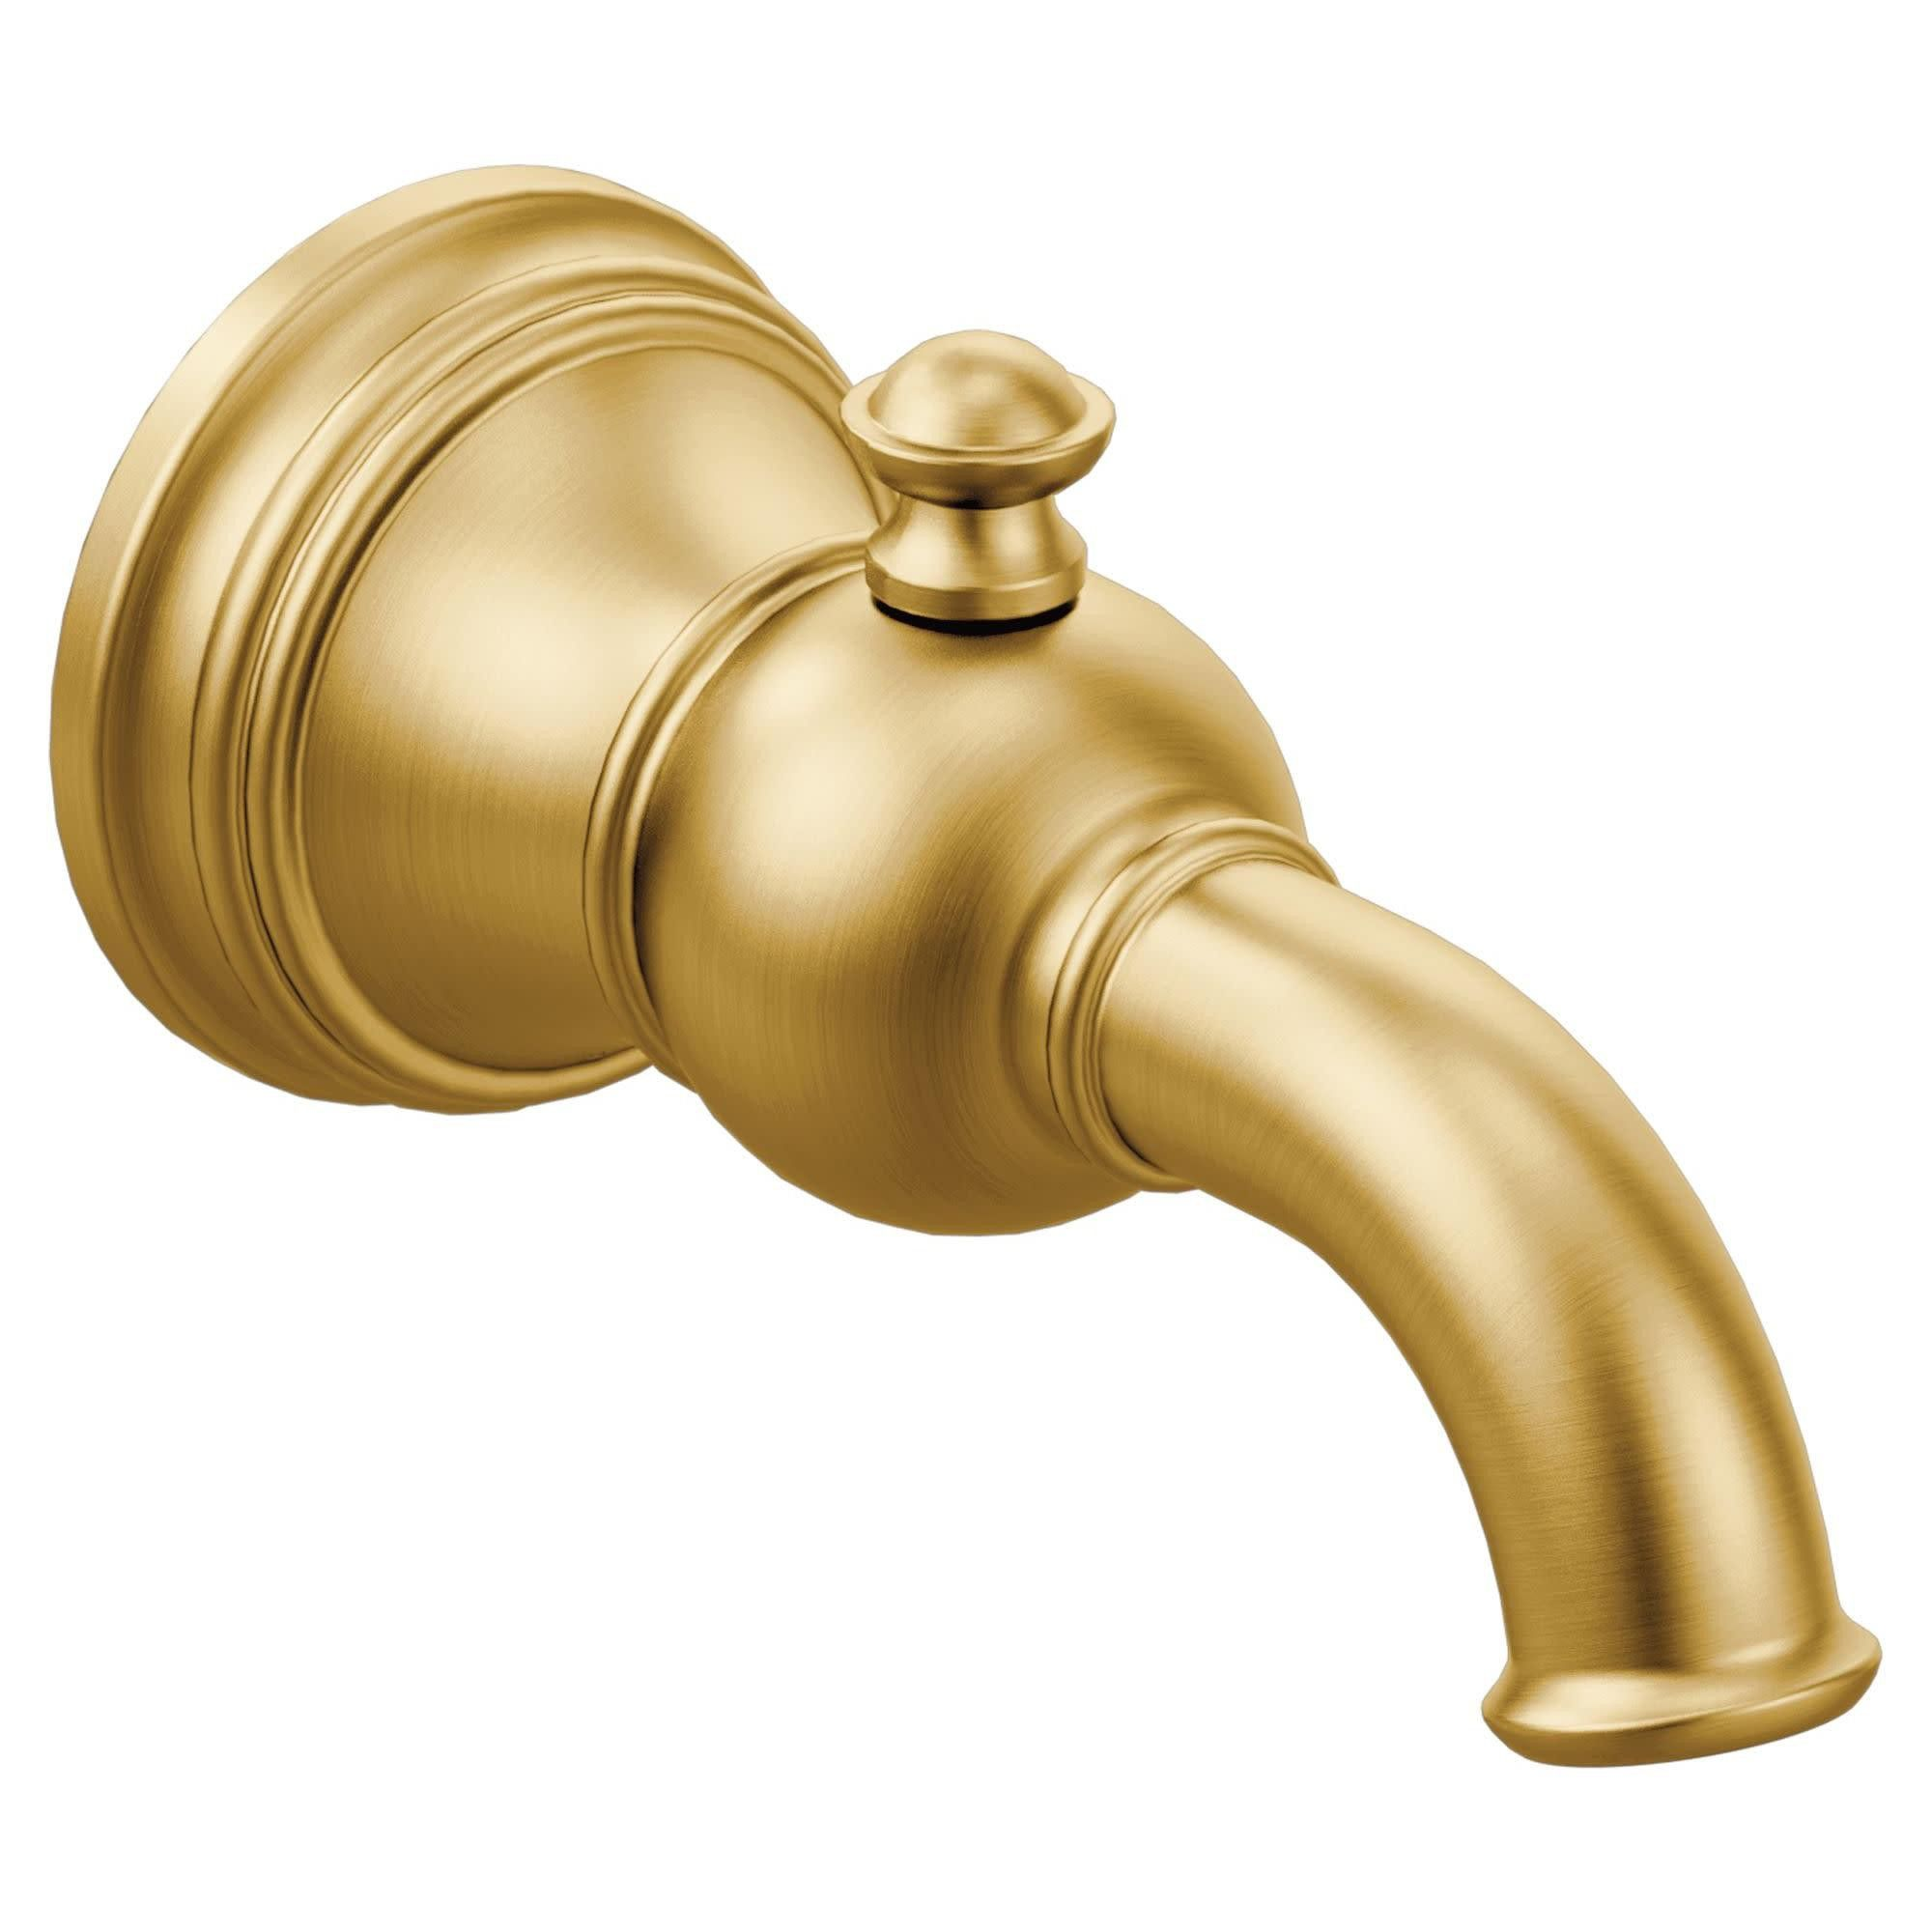 Moen S12104 Weymouth 6 3 4 Wall Mounted Tub Spout Brushed Gold